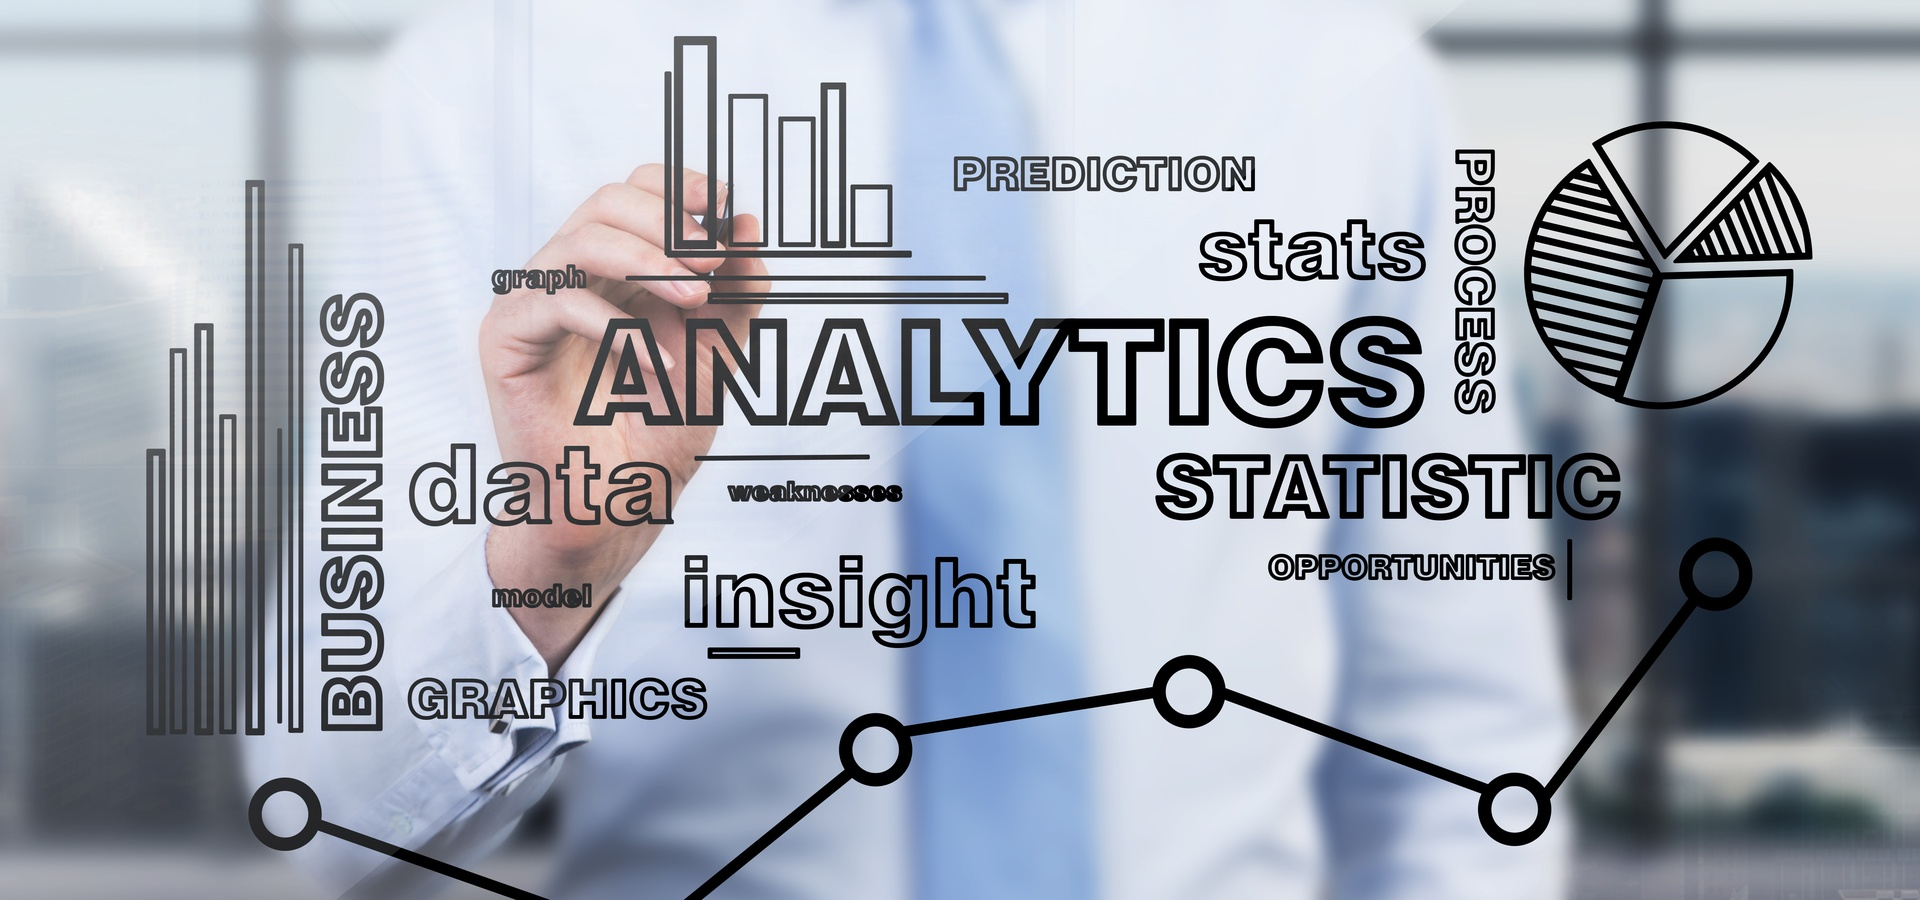 Analytics: 4 Steps to Measuring Performance Like a Pro